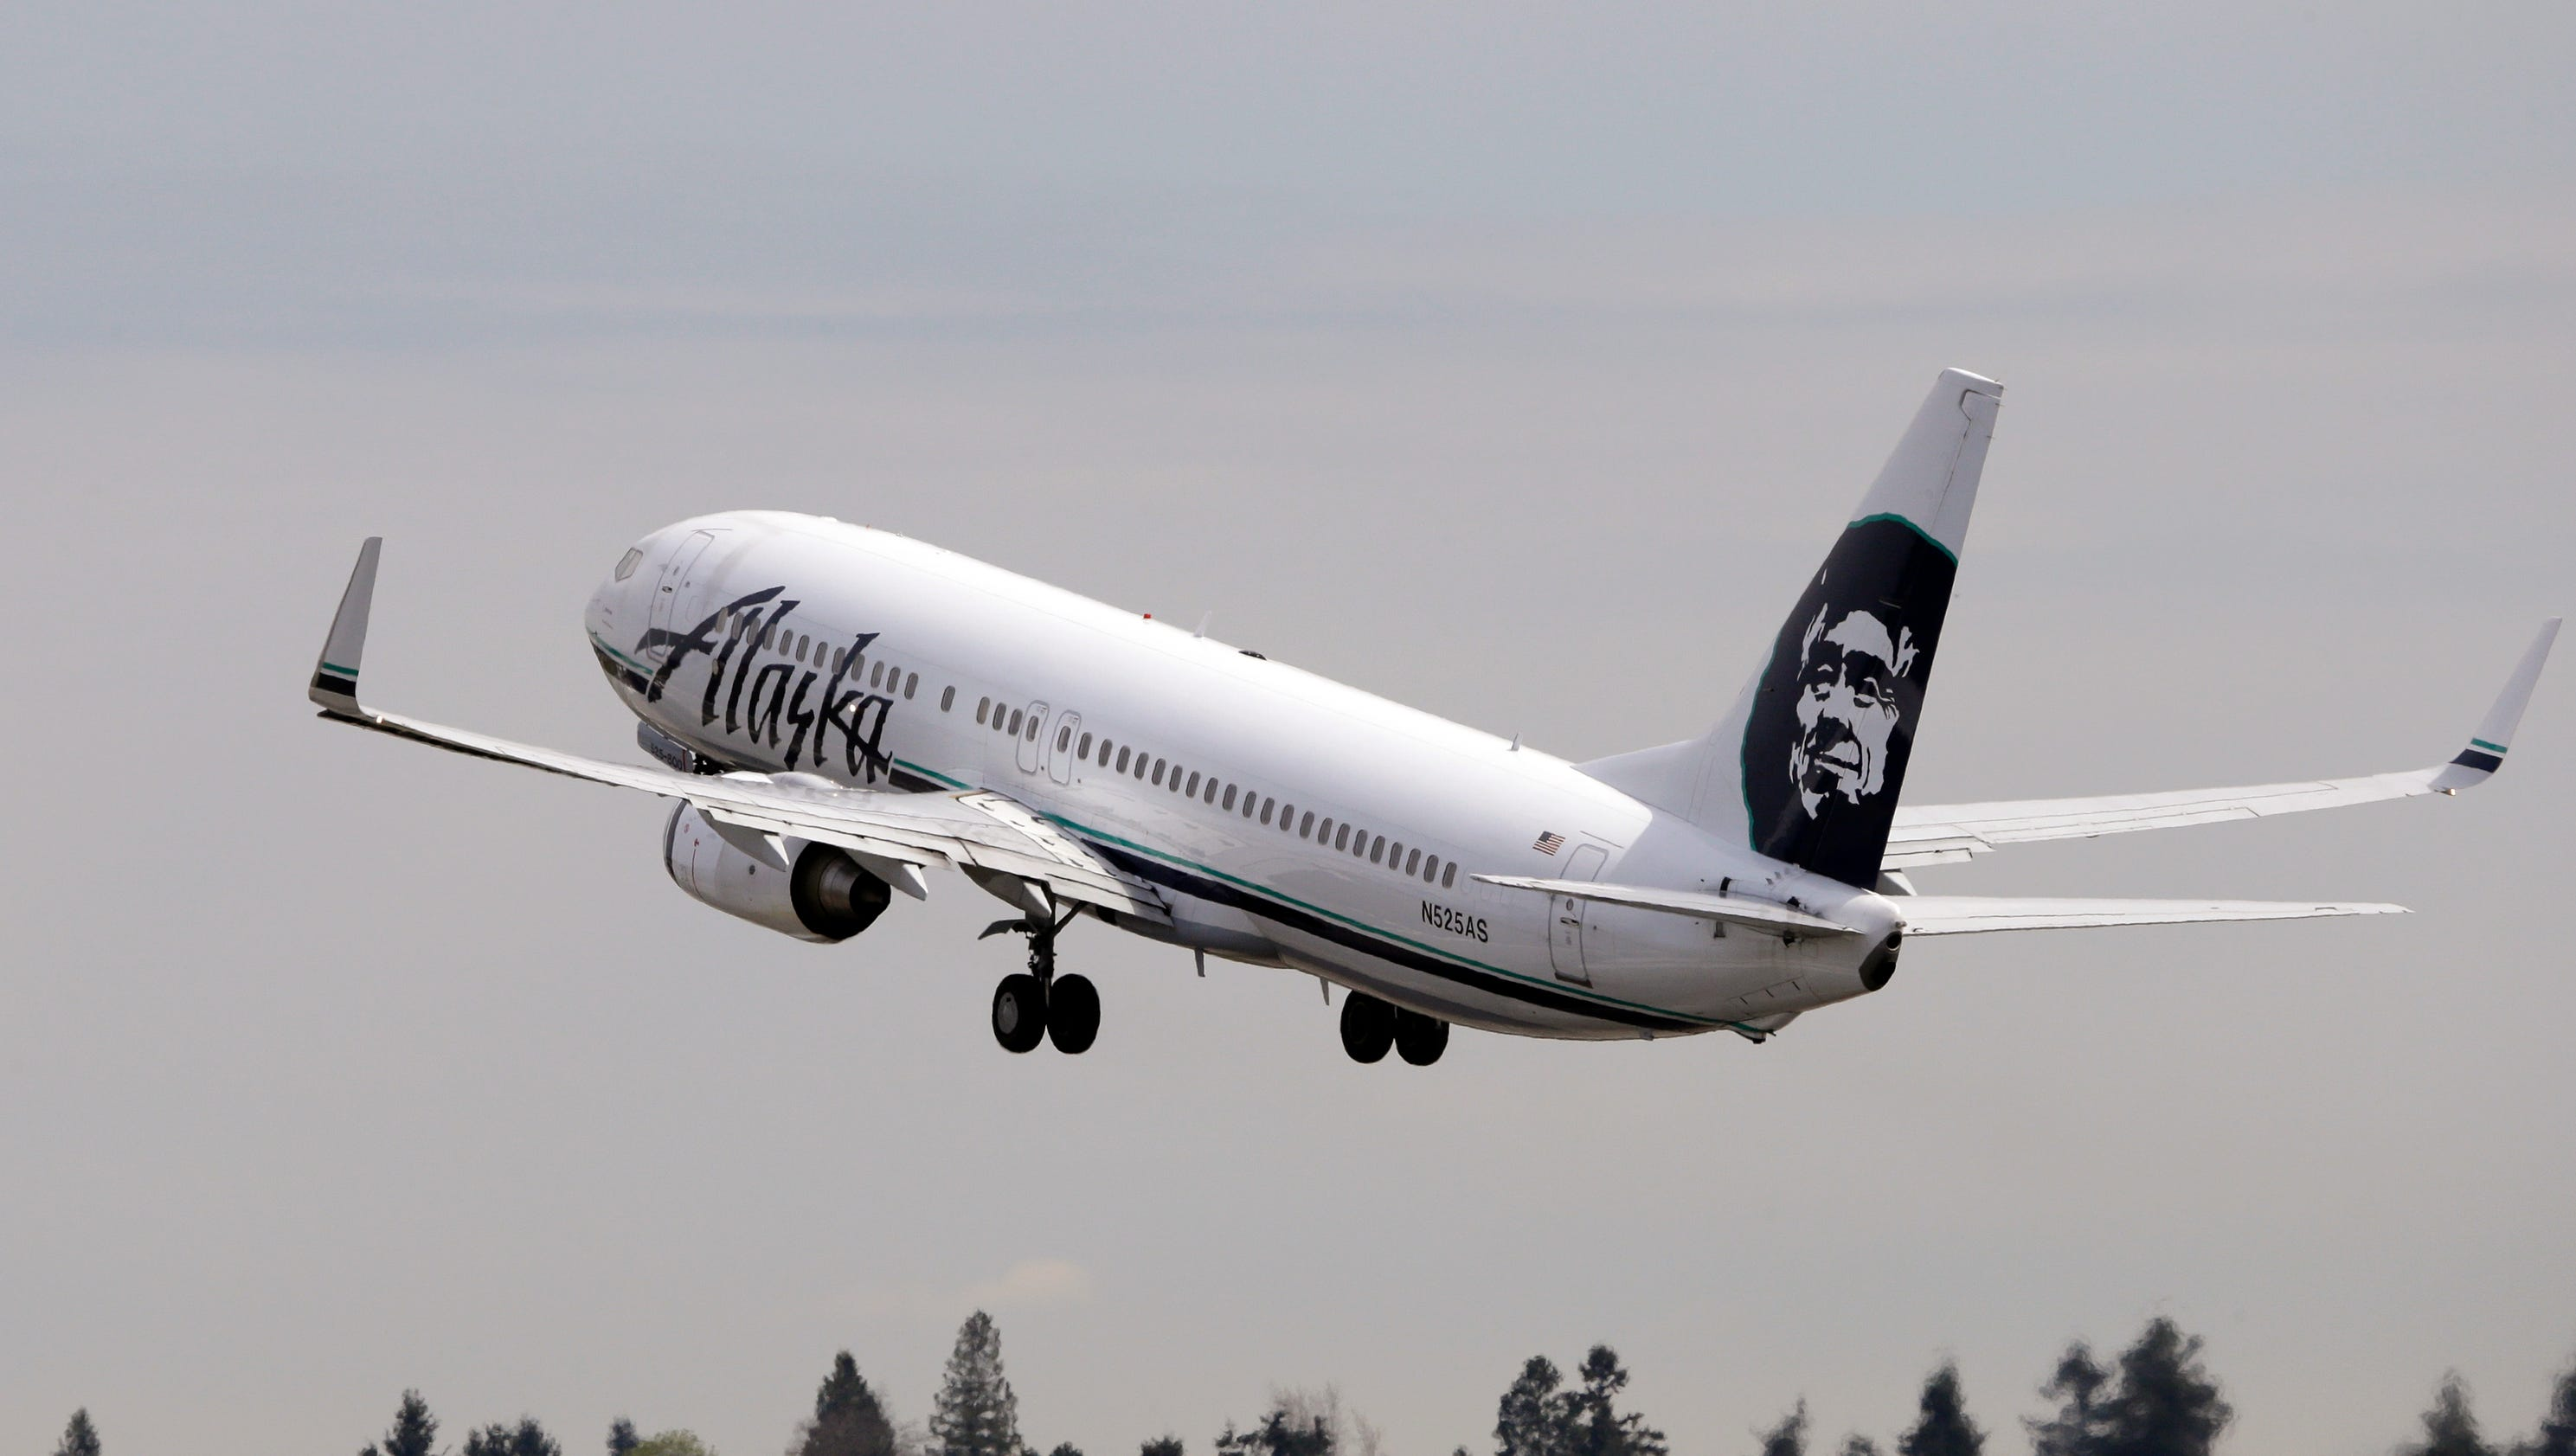 Alaska Air plans two Mexico routes from Portland, Ore. Alaska Airlines